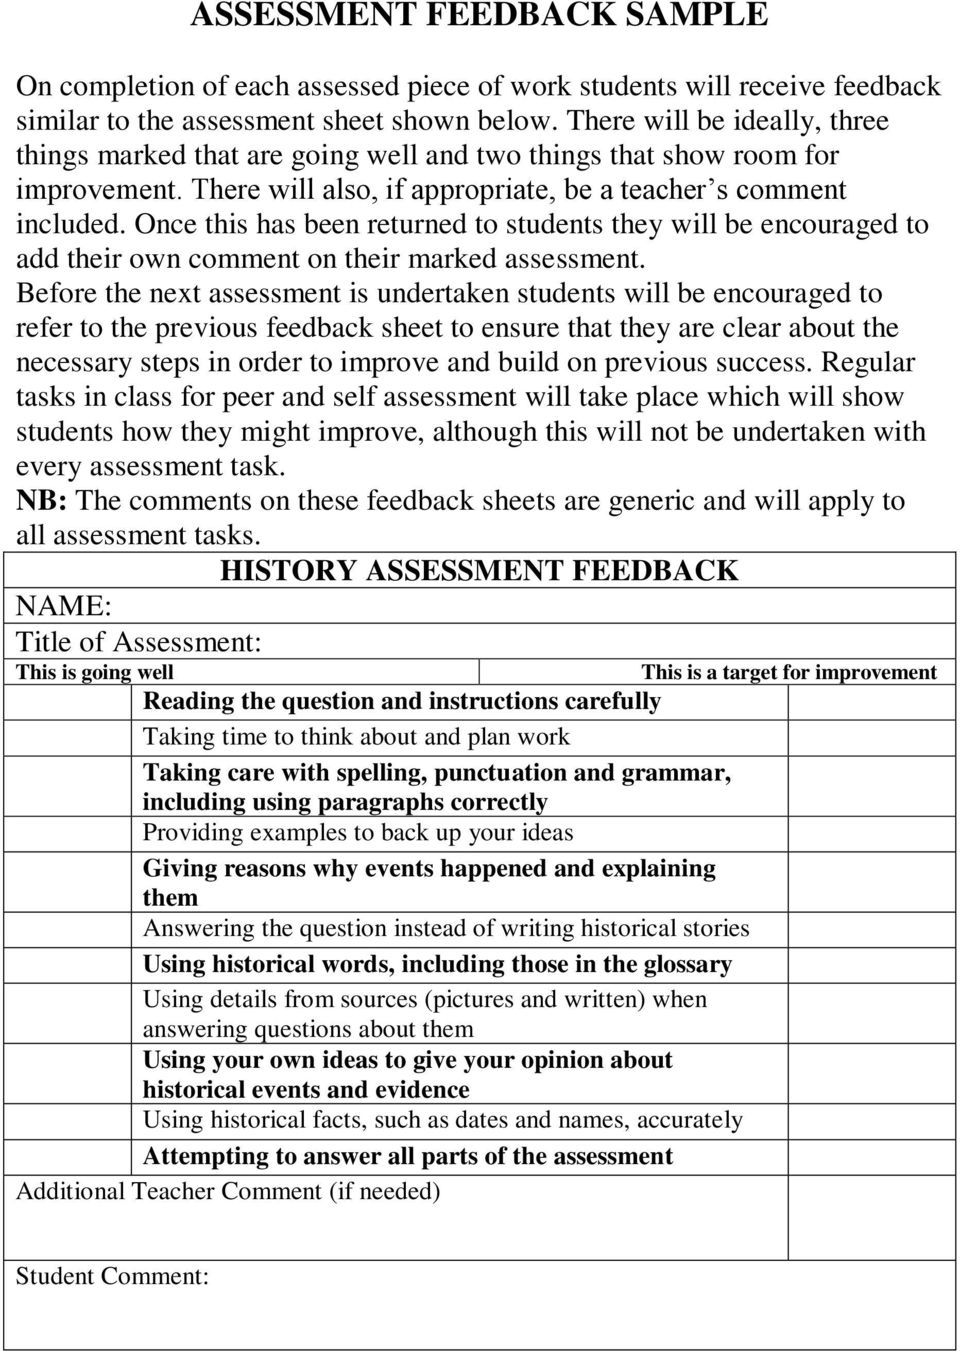 Once this has been returned to students they will be encouraged to add their own comment on their marked assessment.